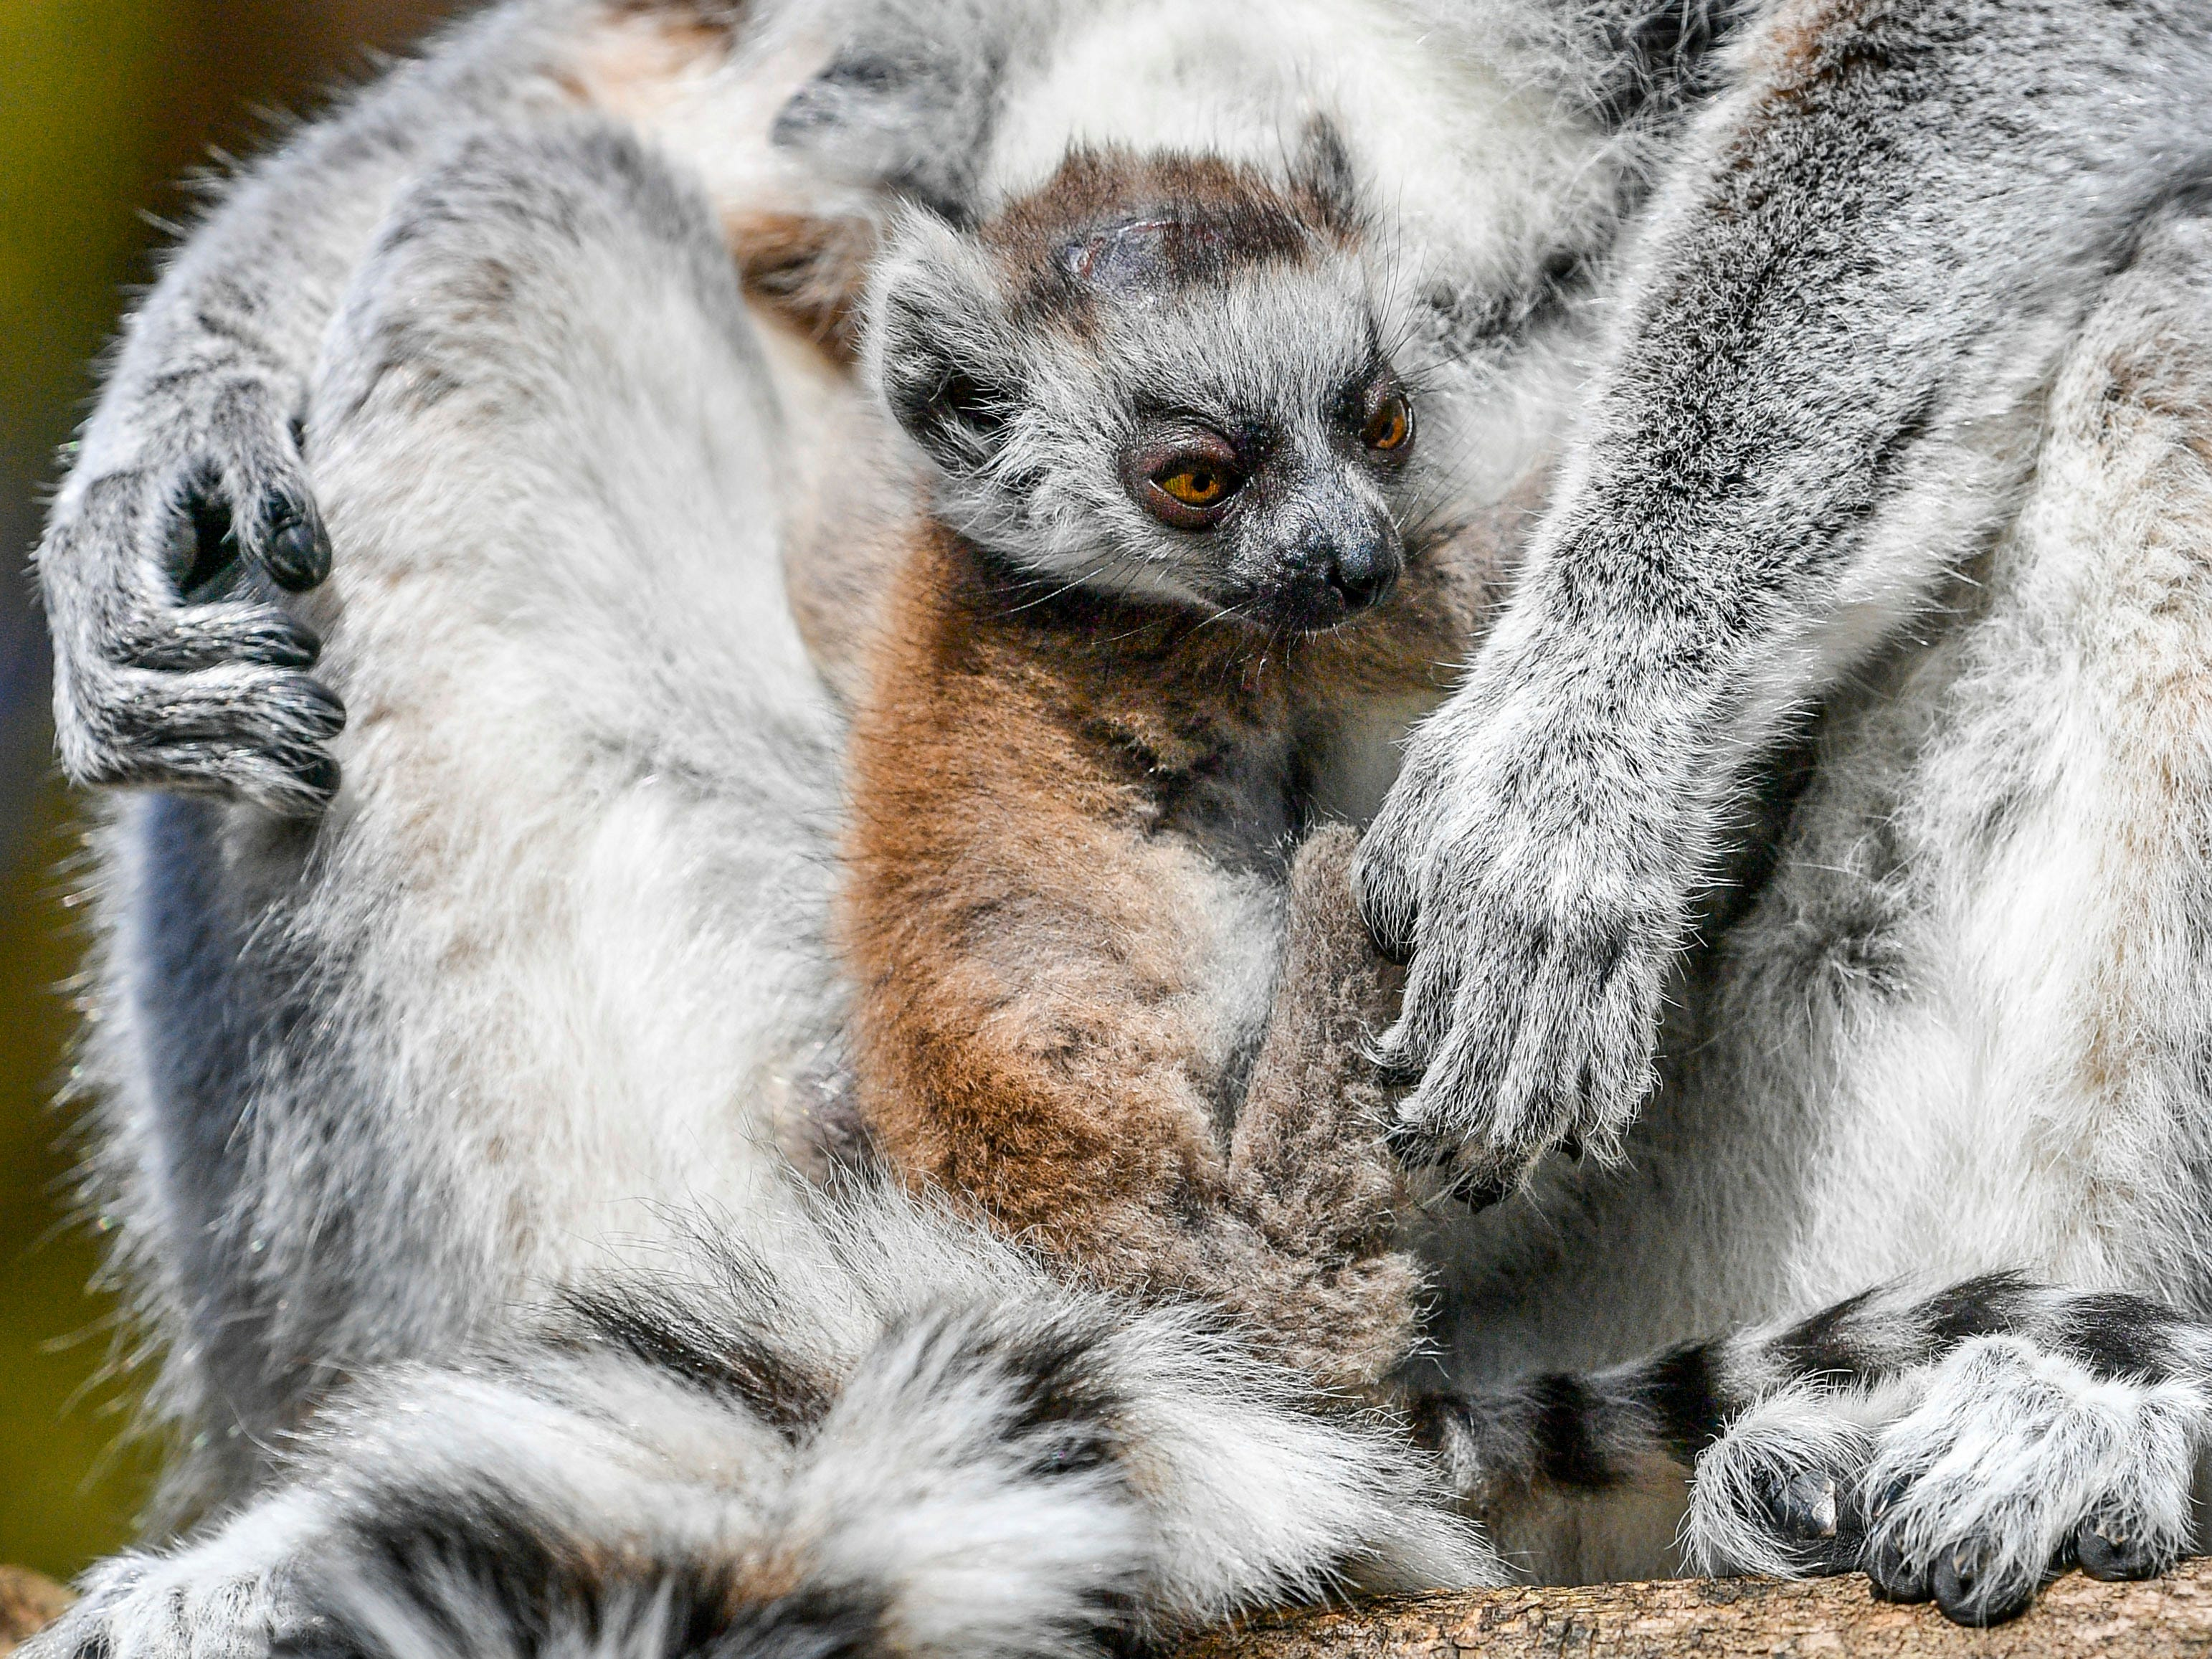 A baby ring-tailed lemur clings to mum, Mavis, as both her and twin sister Ethel have delivered a trio of babies between them for a third year running at Bristol Zoo Gardens, in Bristol, England, Thursday, April 11, 2019. The sisters have a history of synchronising their births since they brought babies into the world on the same night in 2017. In 2018, the eight-year-old siblings gave birth within just three days of each other and this year Mavis gave birth to a singleton on March 31 and Ethel gave birth to twins on Thursday 4 April.